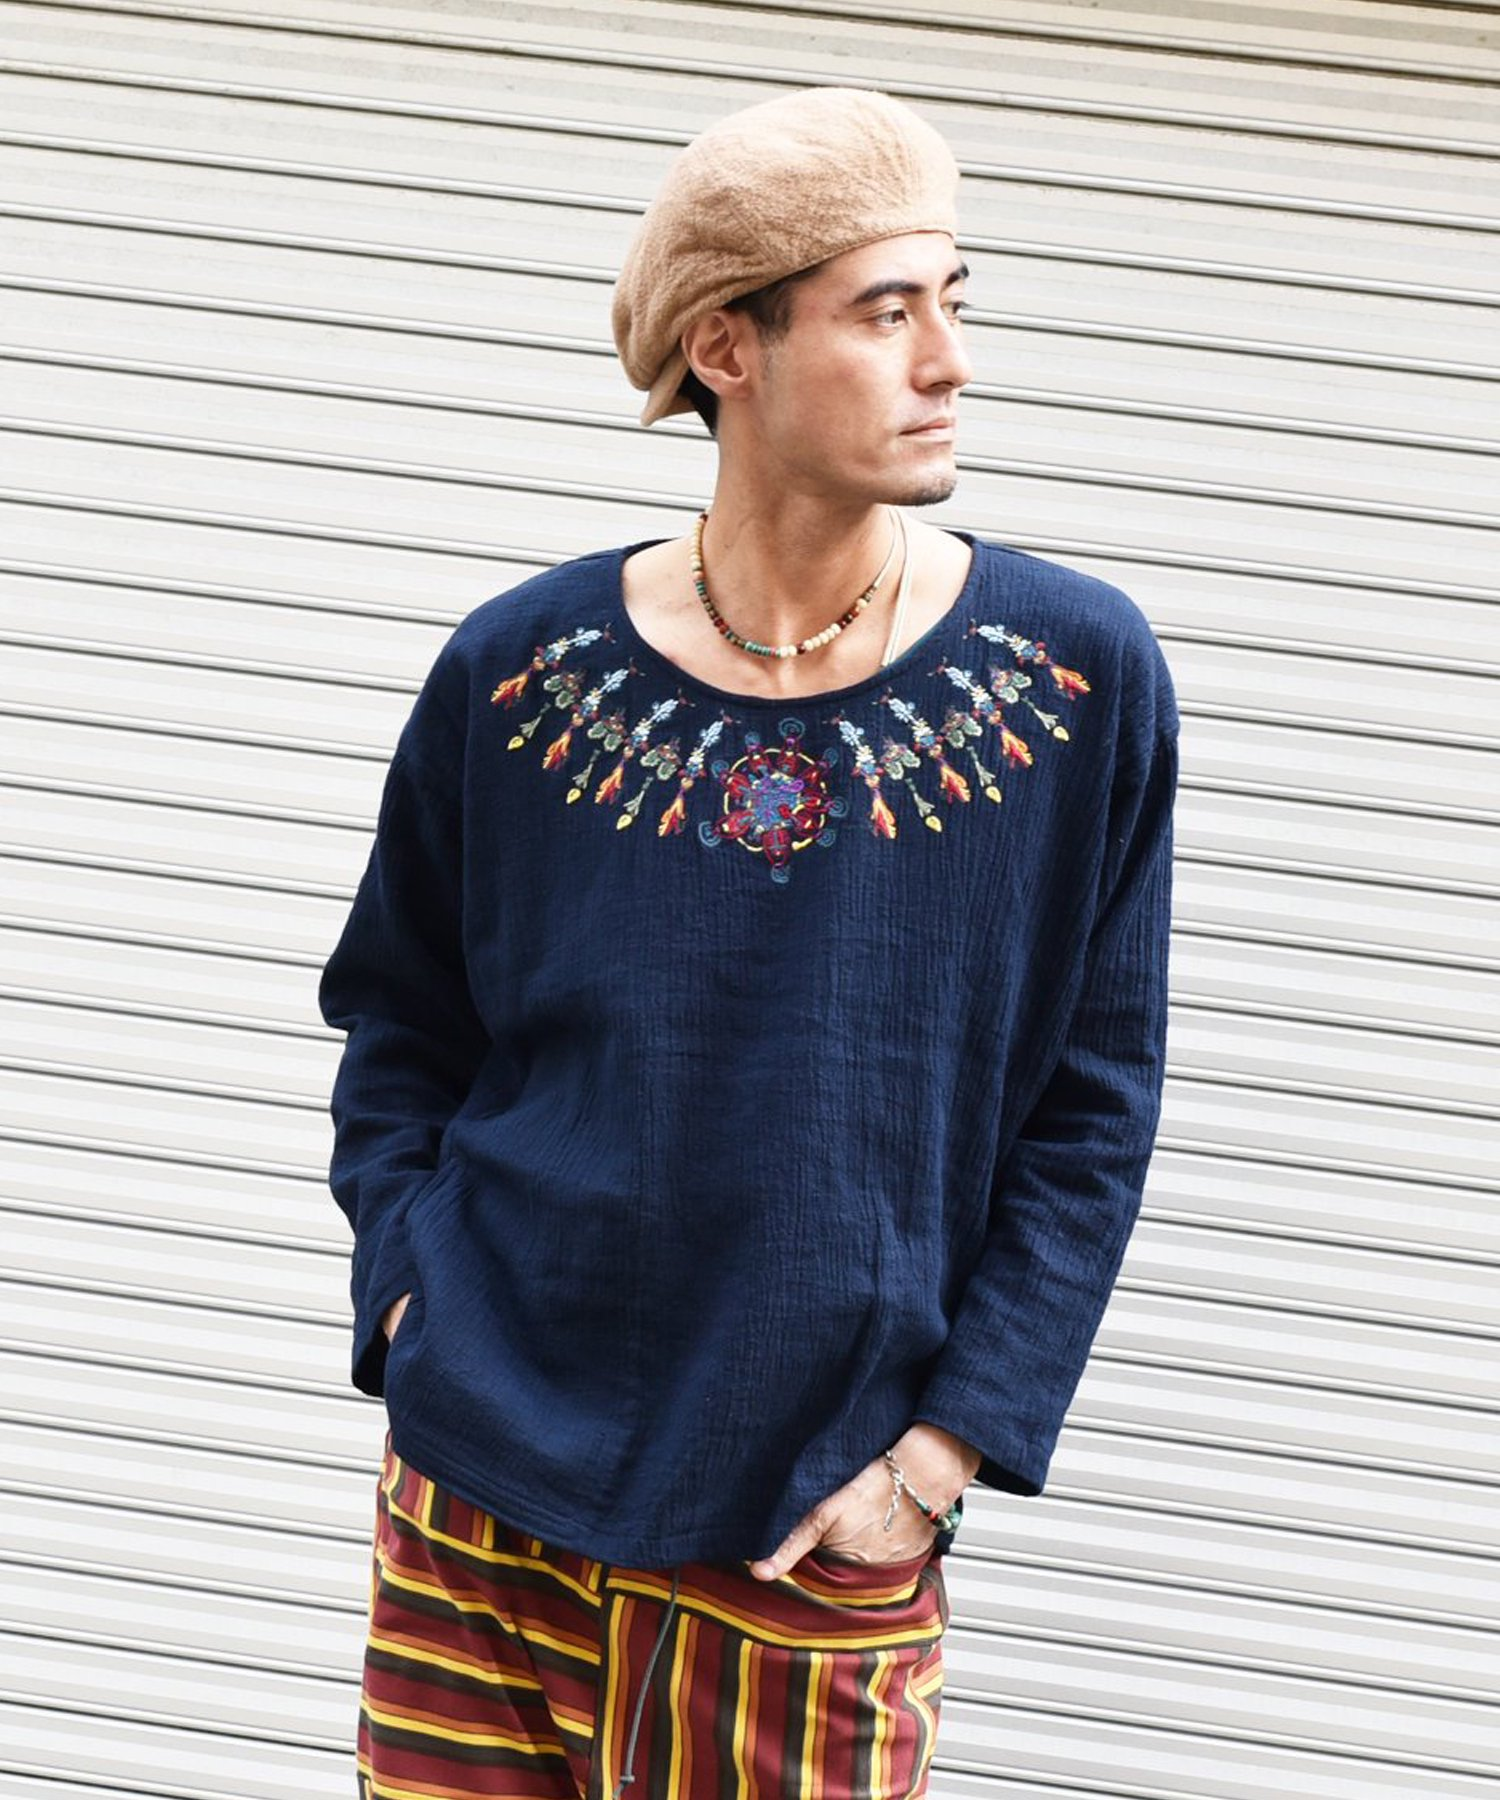 25%off! ARIGATO FAKKYU - アリガトファッキュ EMBROIDERY PULL OVER / #2